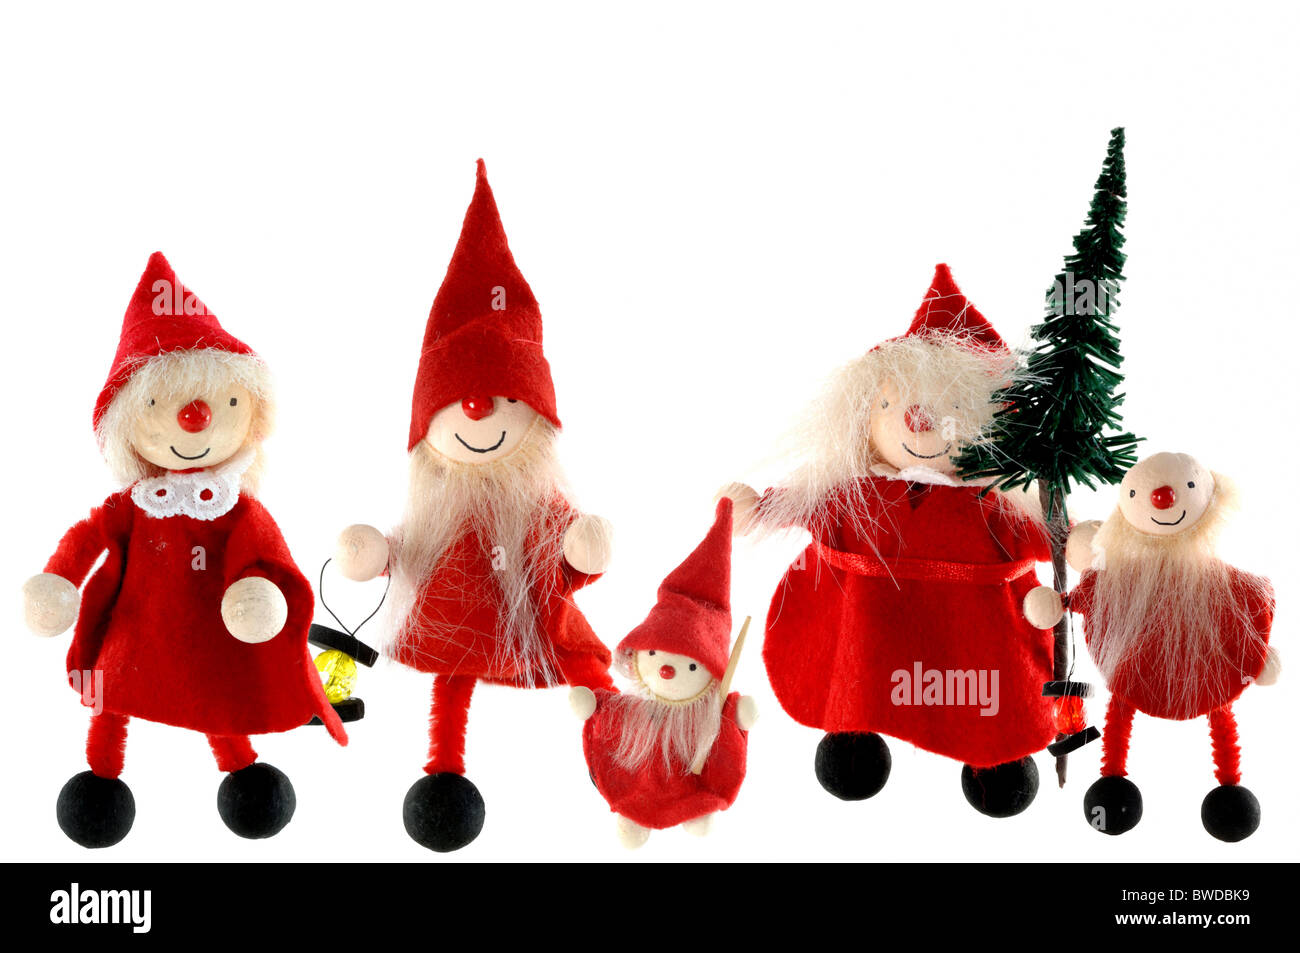 imp family as a symbol for christmas - Stock Image